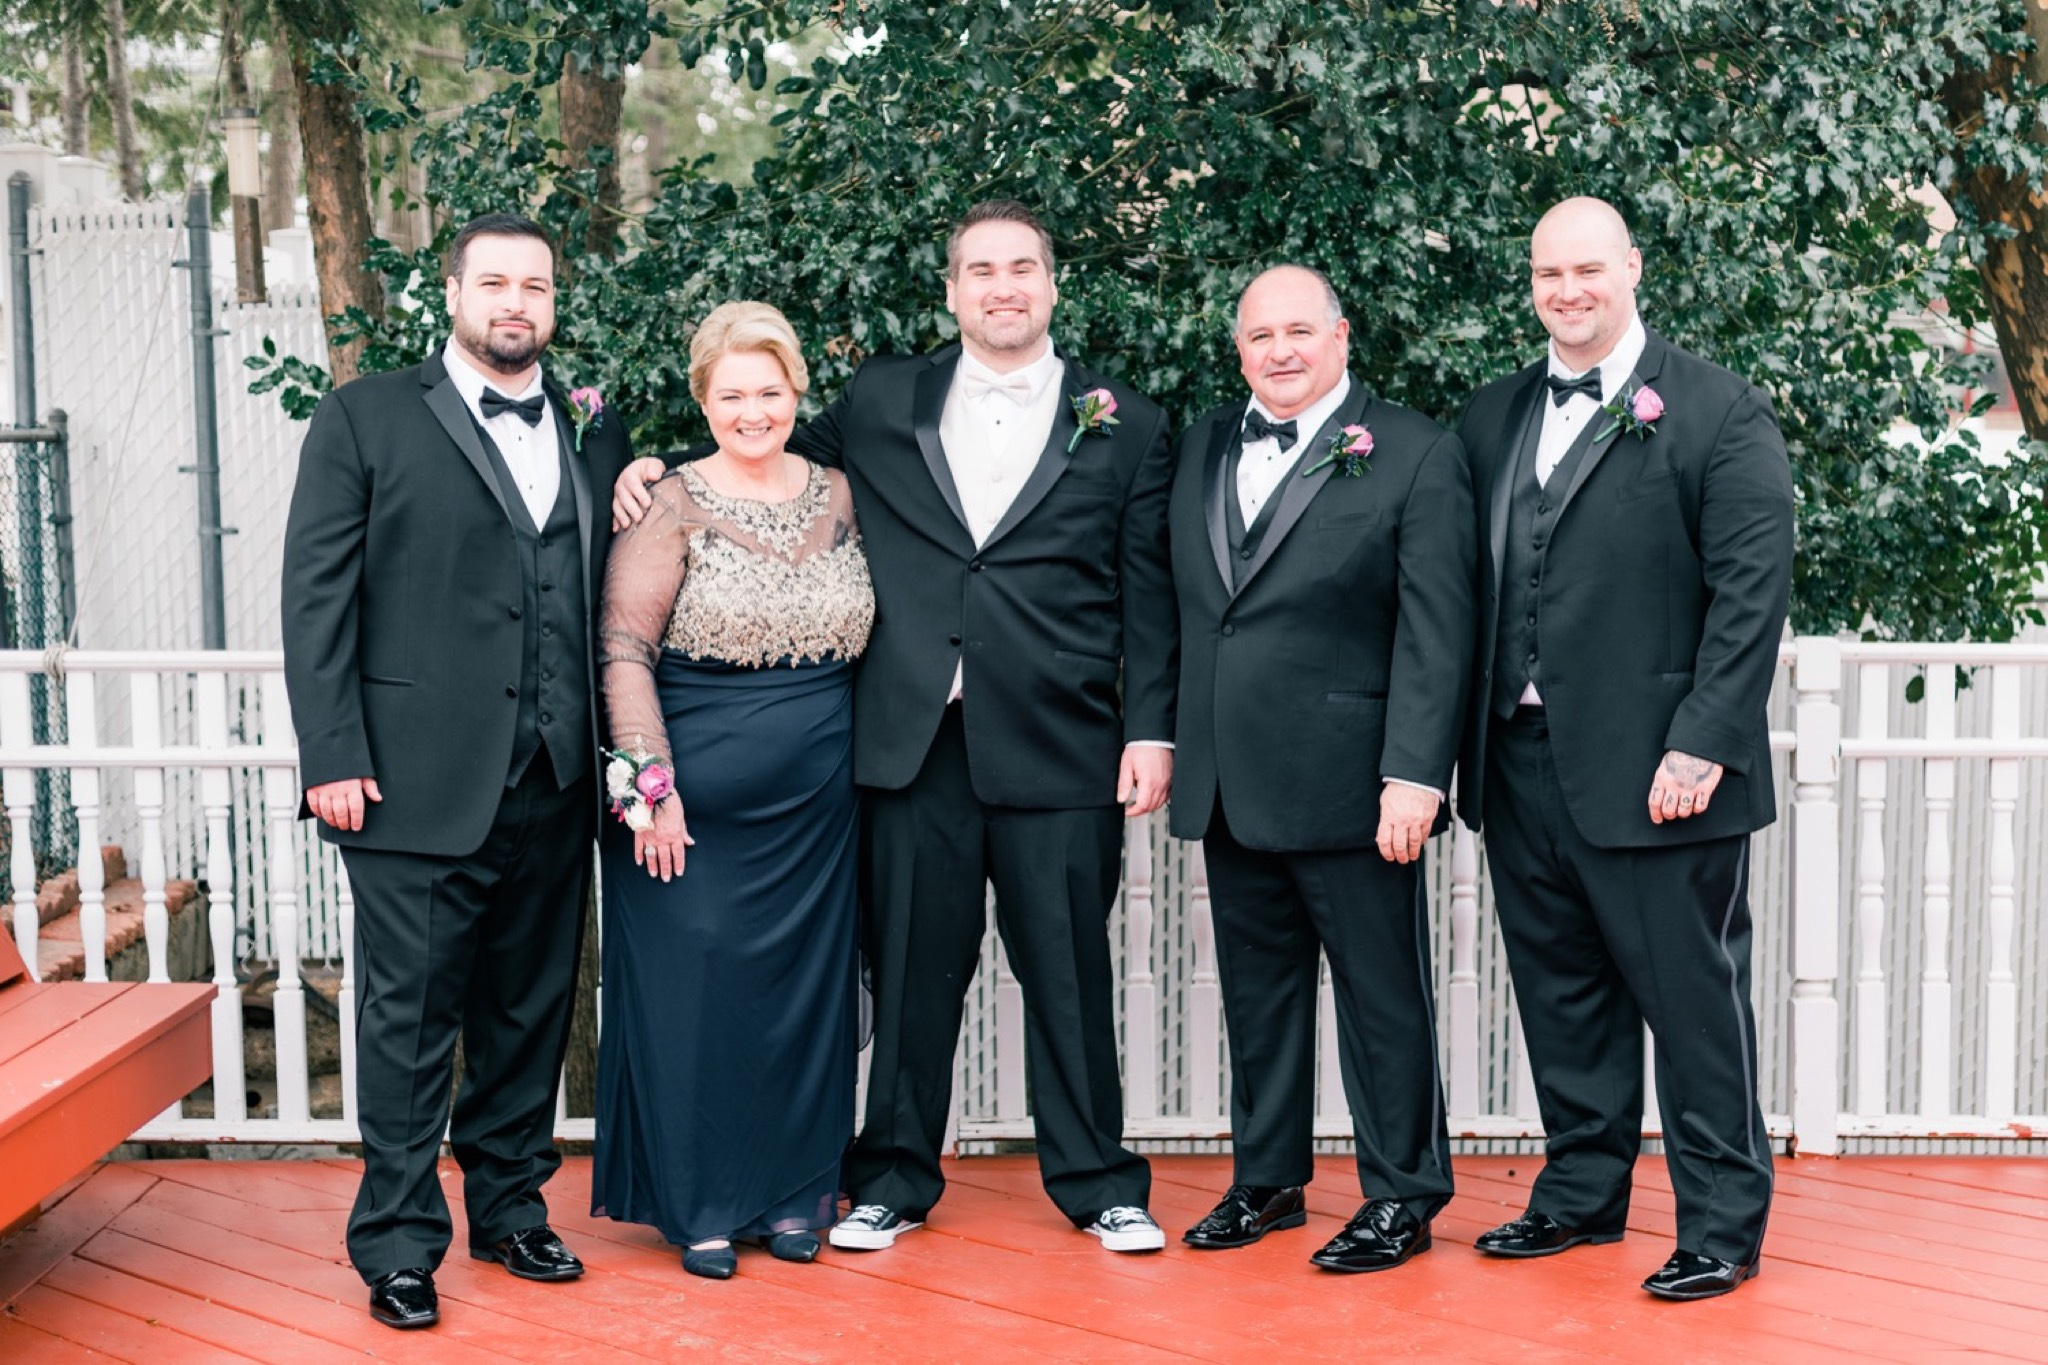 Family Staten Island Wedding